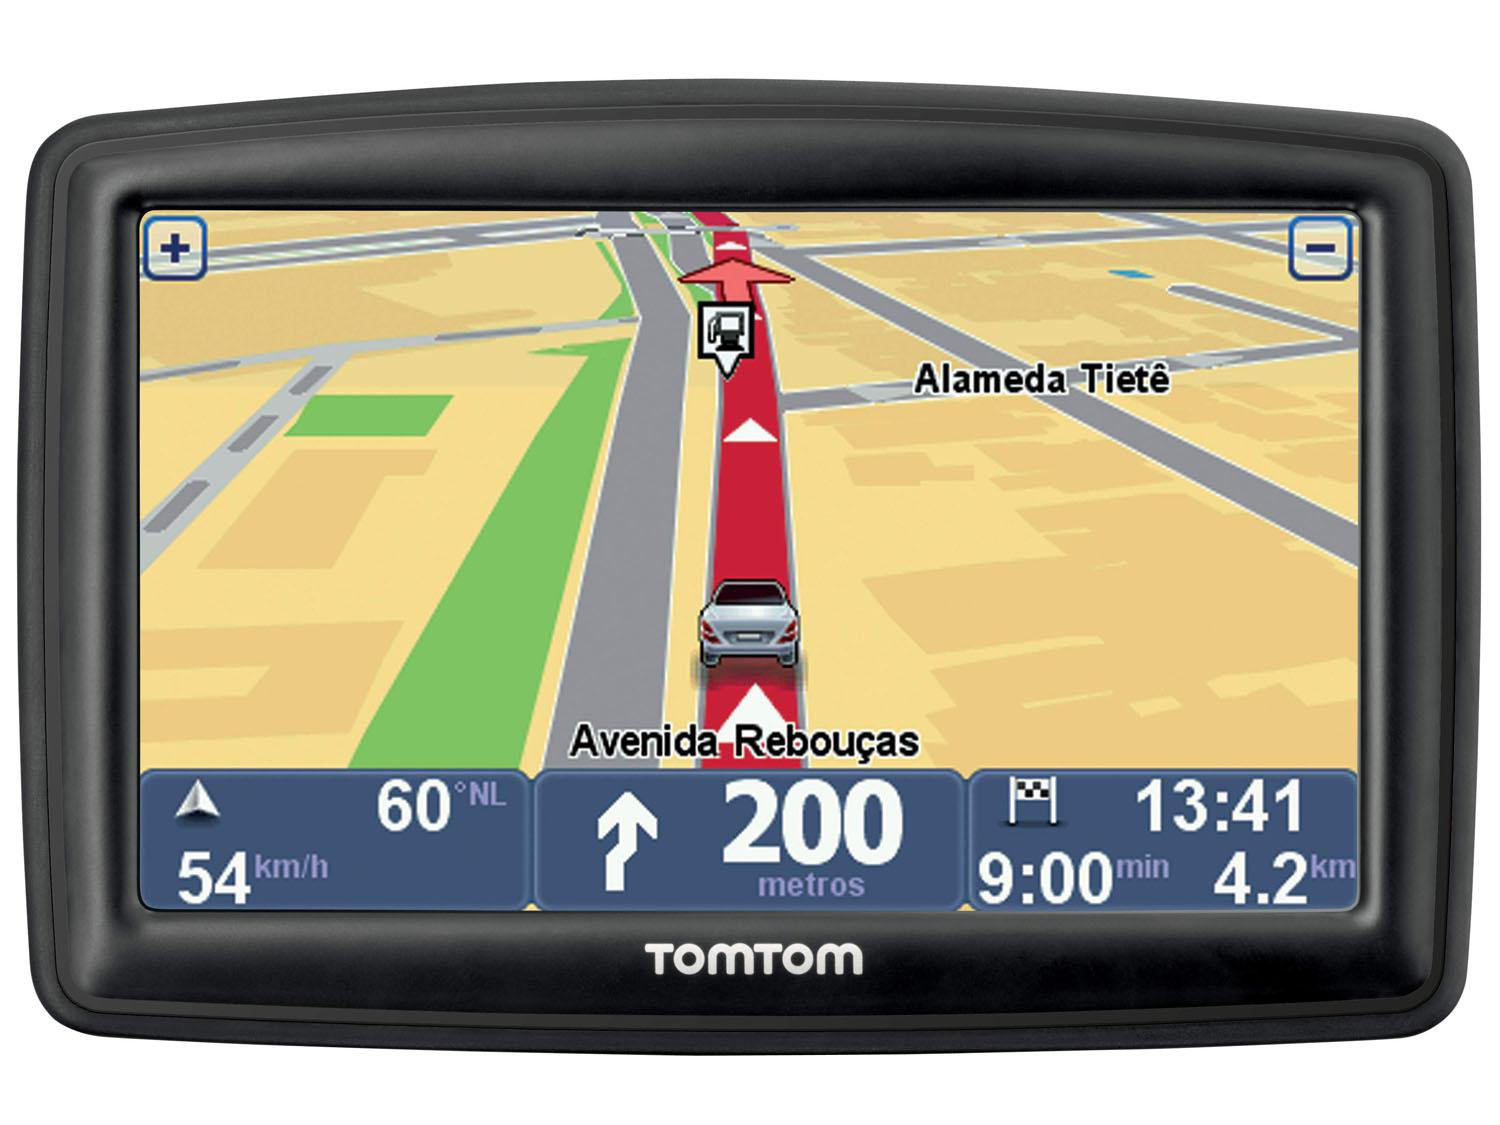 vem por a novos mapas tomtom 955 xxxx portal gps. Black Bedroom Furniture Sets. Home Design Ideas